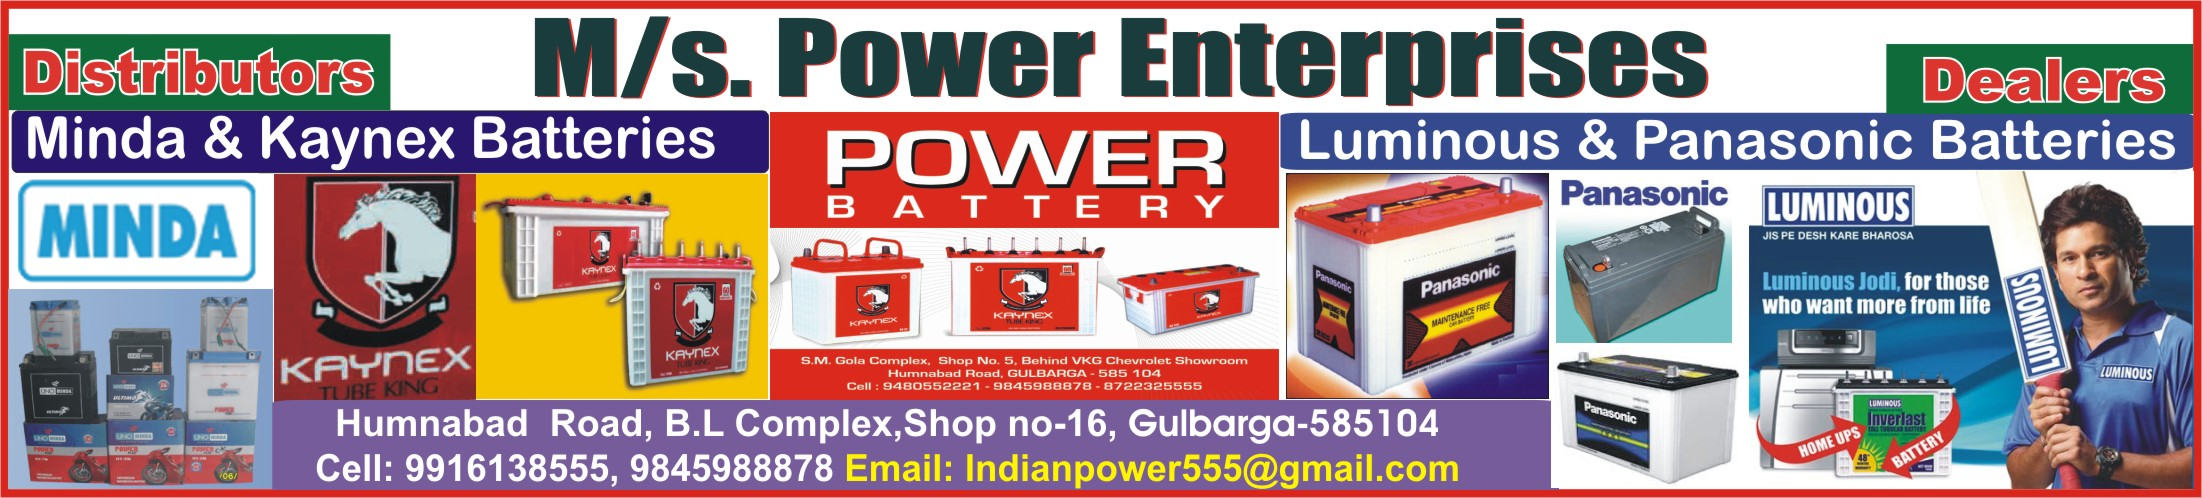 Power Enterprises